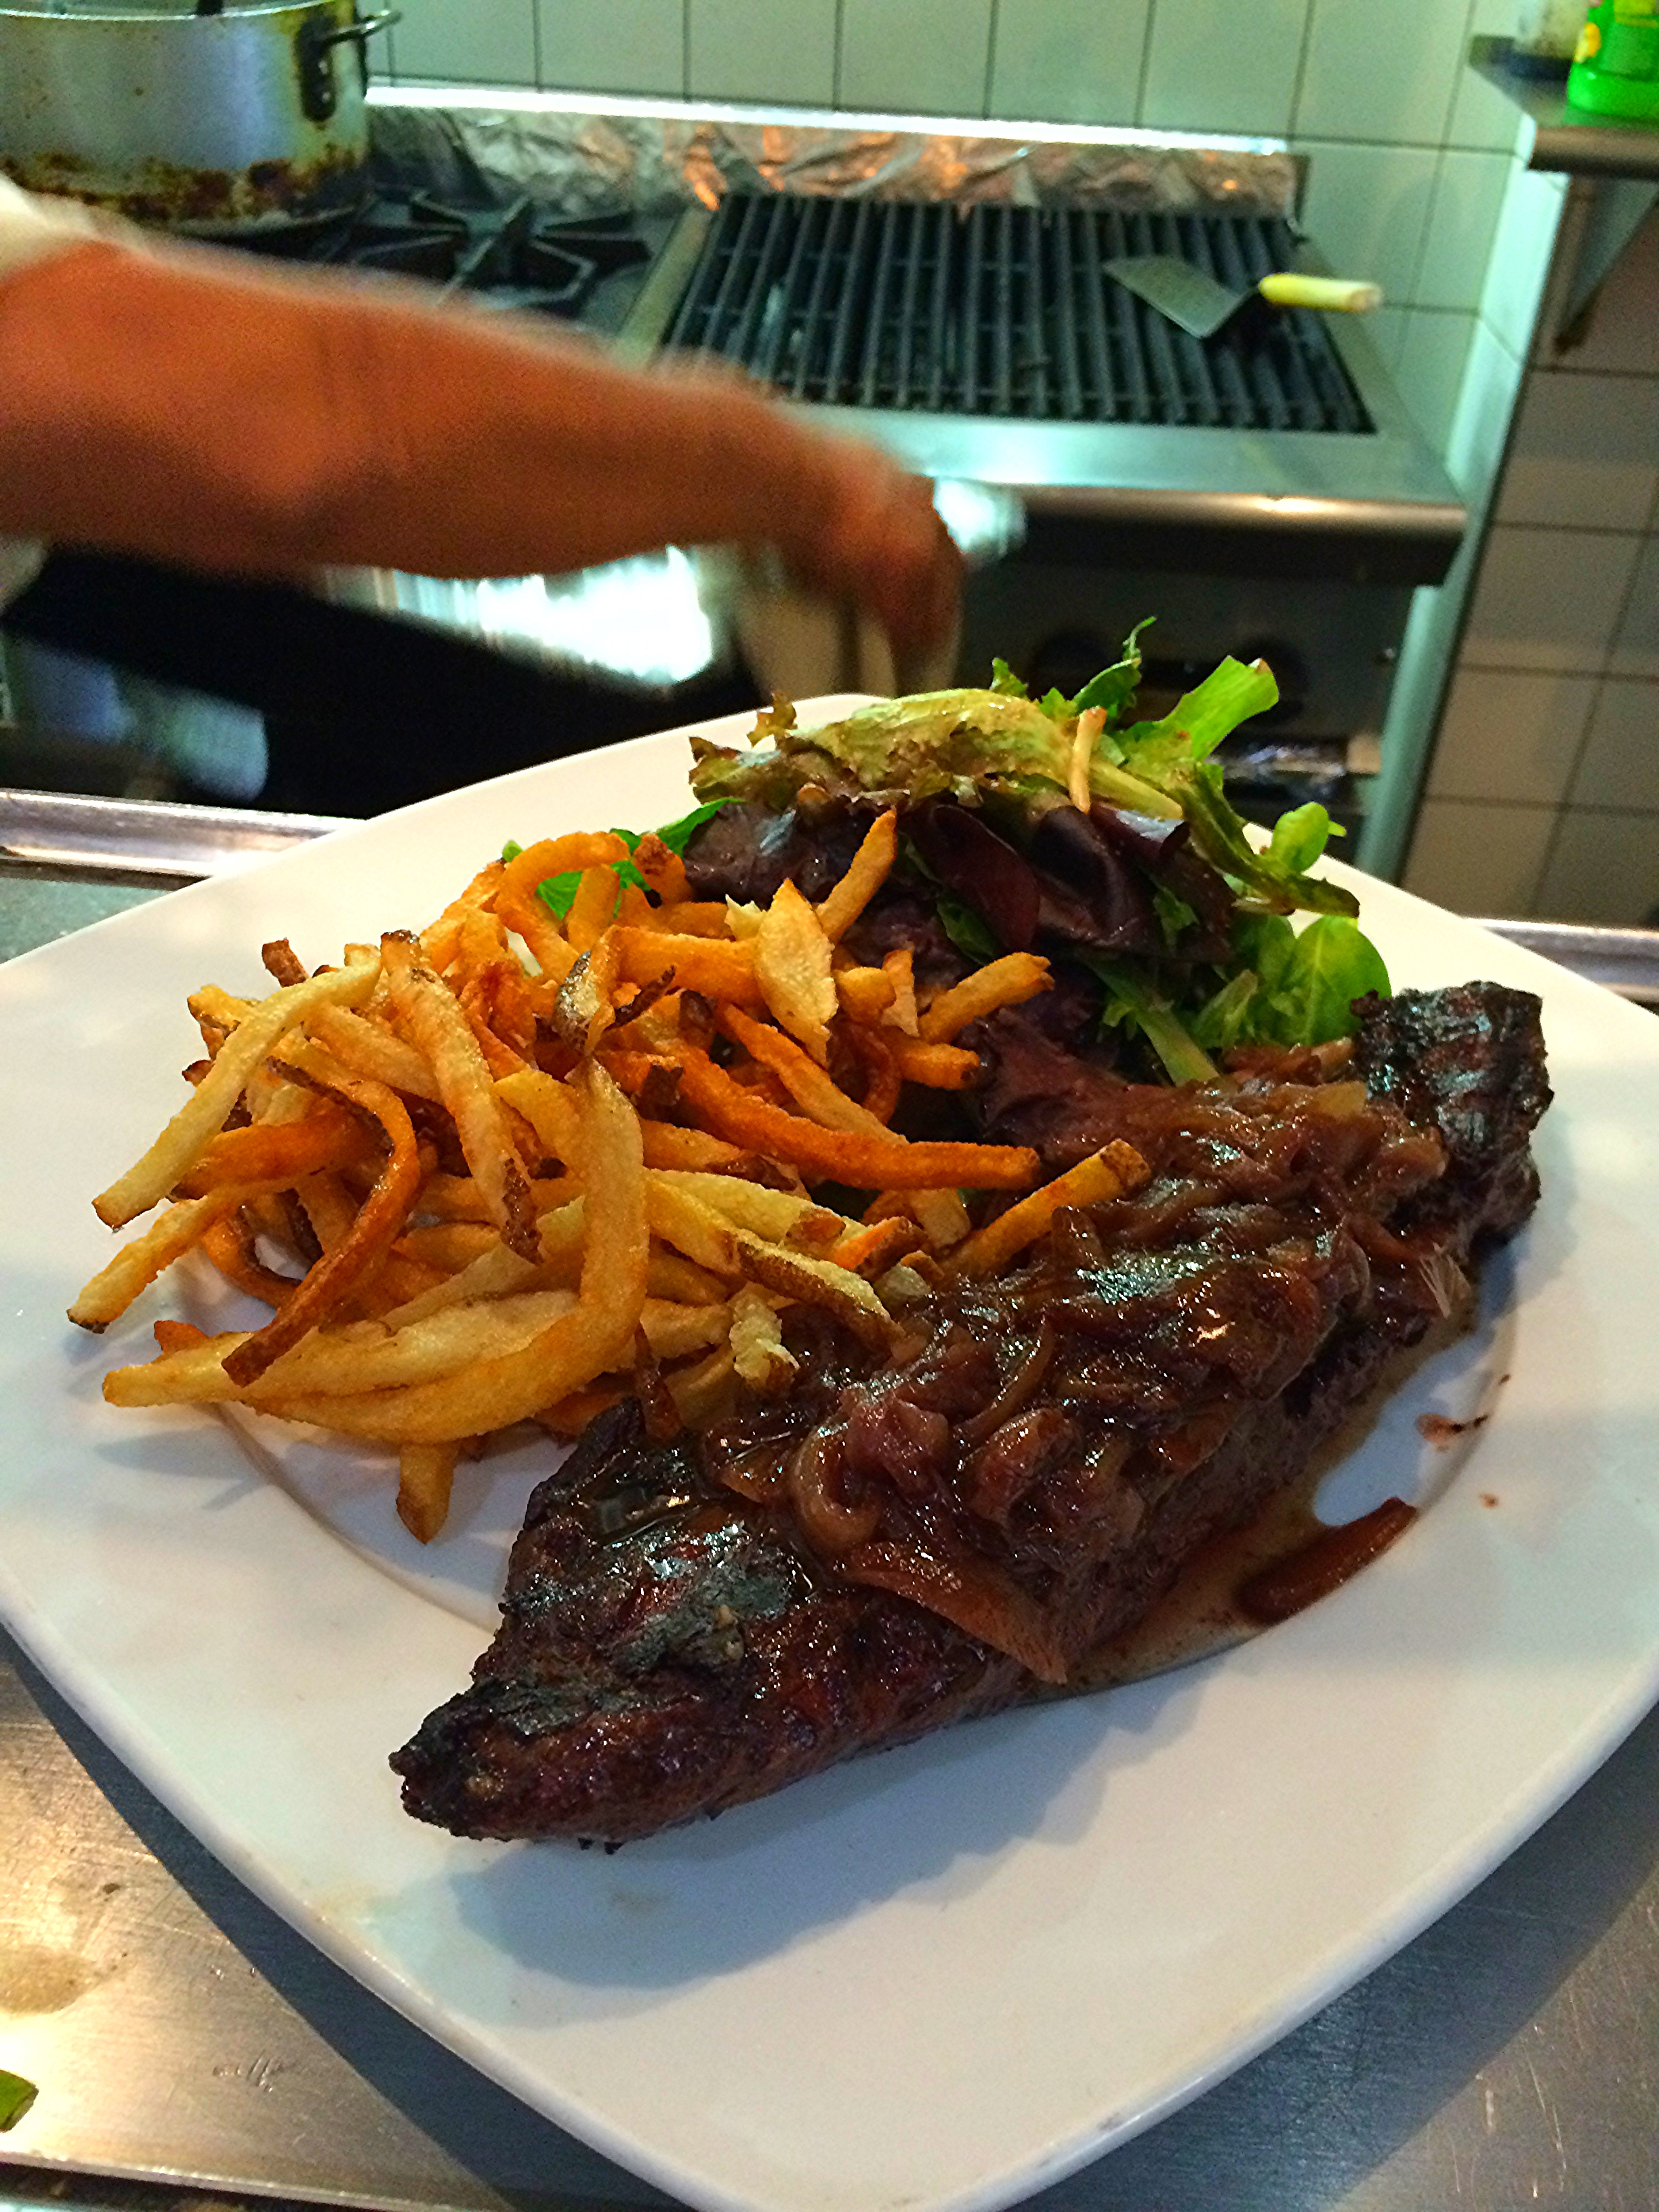 ... we can also grill one of our little butcher steaks for you... happy weekend!